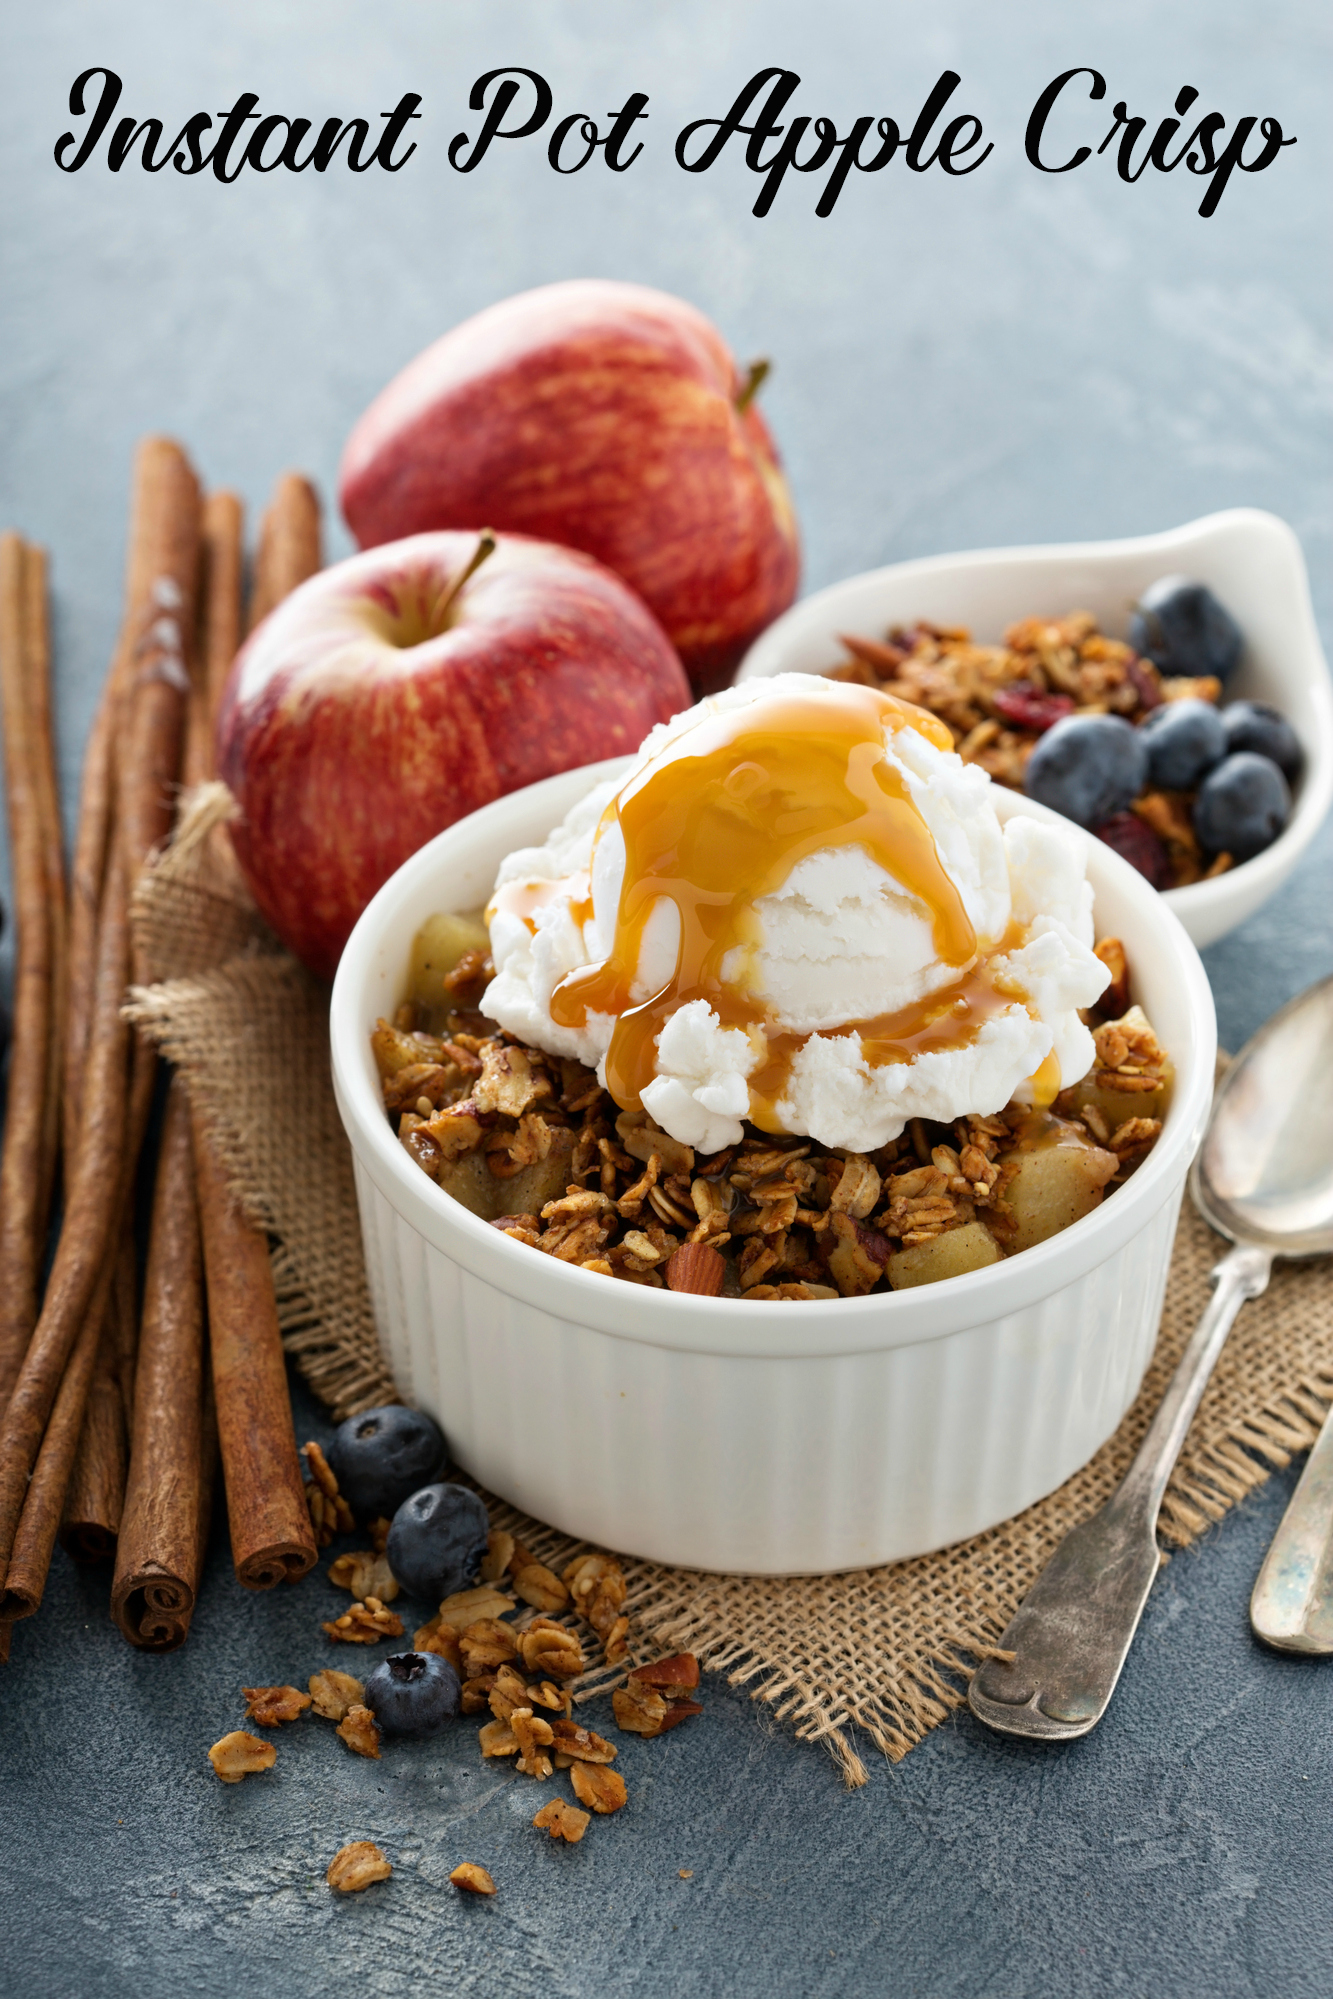 Instant Pot Apple Crisp Duo Crisp